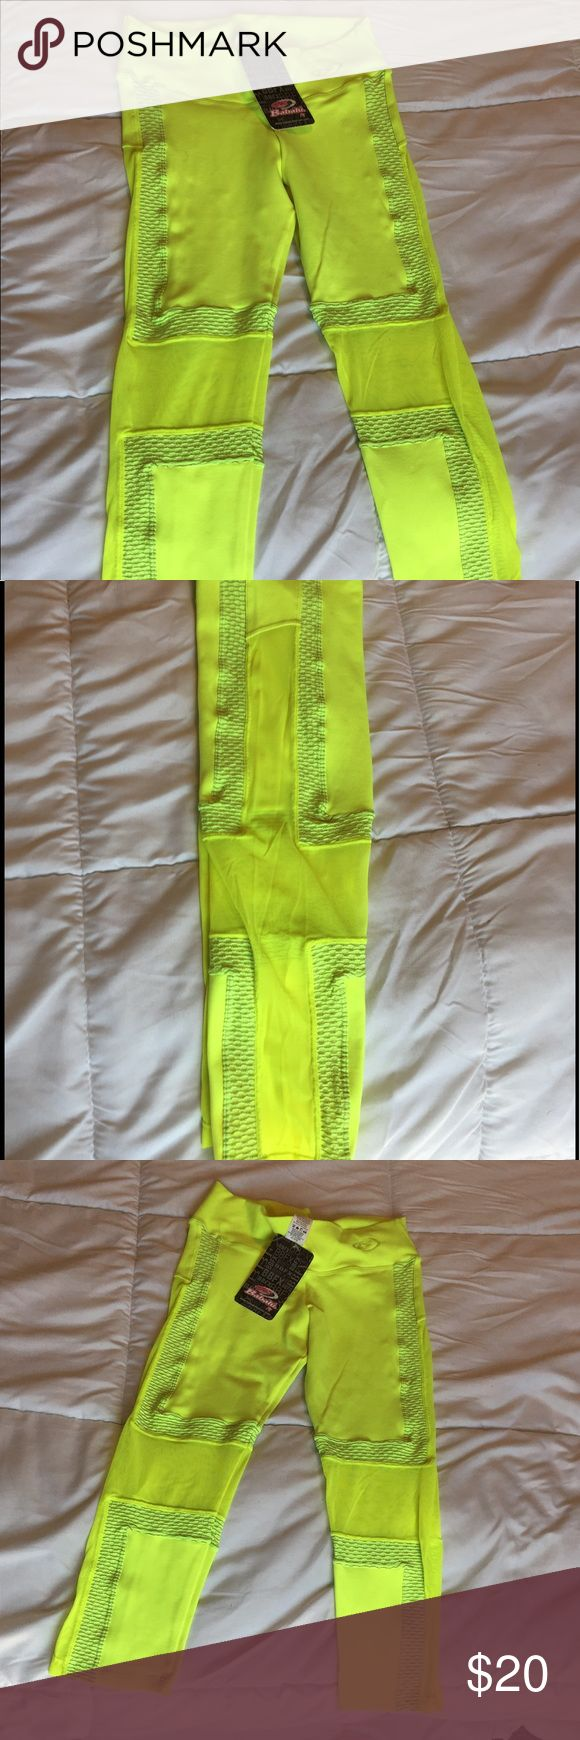 Mesh design leggings Brazilian brand - neon yellow capris with mesh designs front back and sides Pants Capris